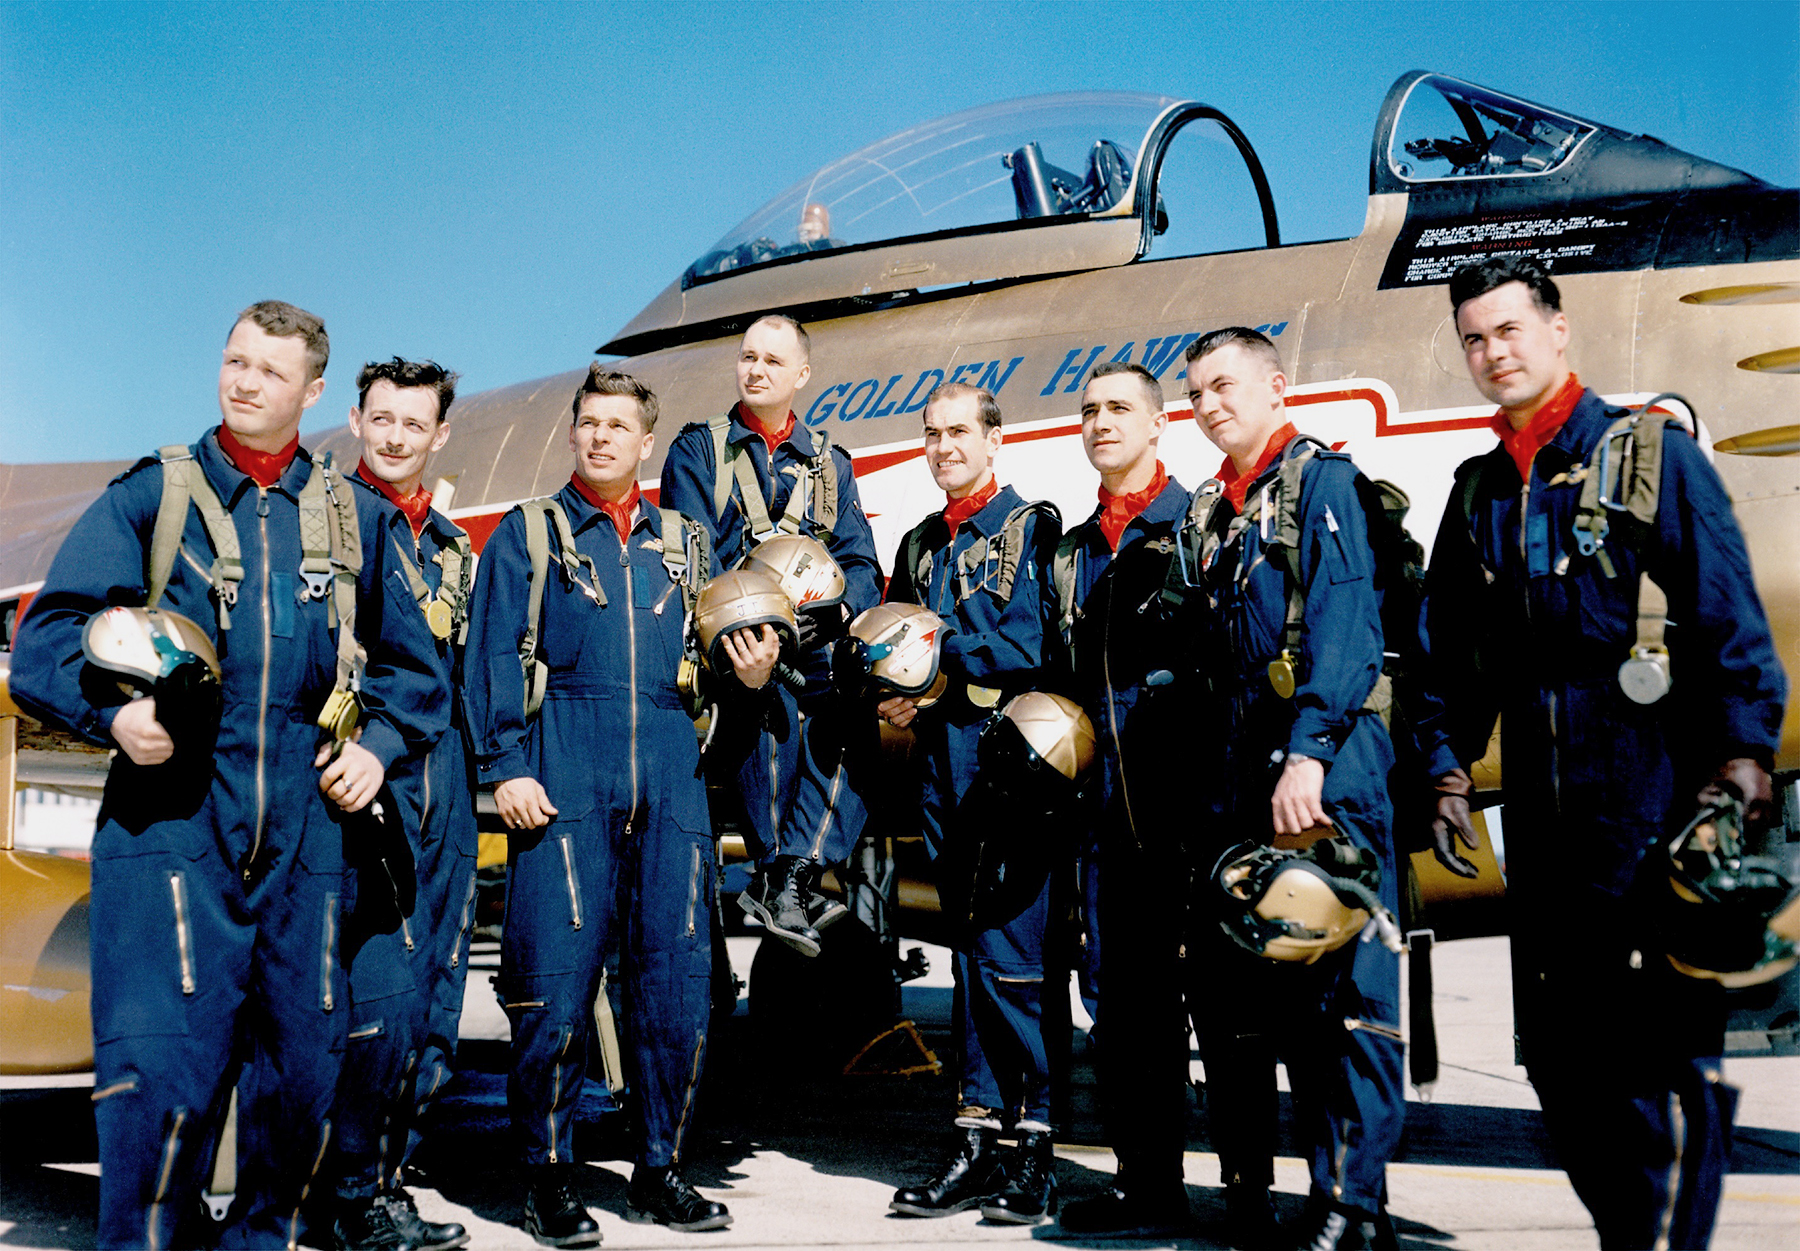 The Golden Hawk pilots of 1959, from left: Flying Officer Bill Stewart, Flying Officer Jim Holt, Flight Lieutenant J.T. Price, Squadron Leader Fern Villeneuve (team leader), Flight Lieutenant Ed Rozdeba, Flight Lieutenant Ralph Annis (lead solo), Flight Lieutenant Jim McCombe, Flight Lieutenant Jeb Kerr PHOTO: RCAF, courtesy of Dan Dempsey